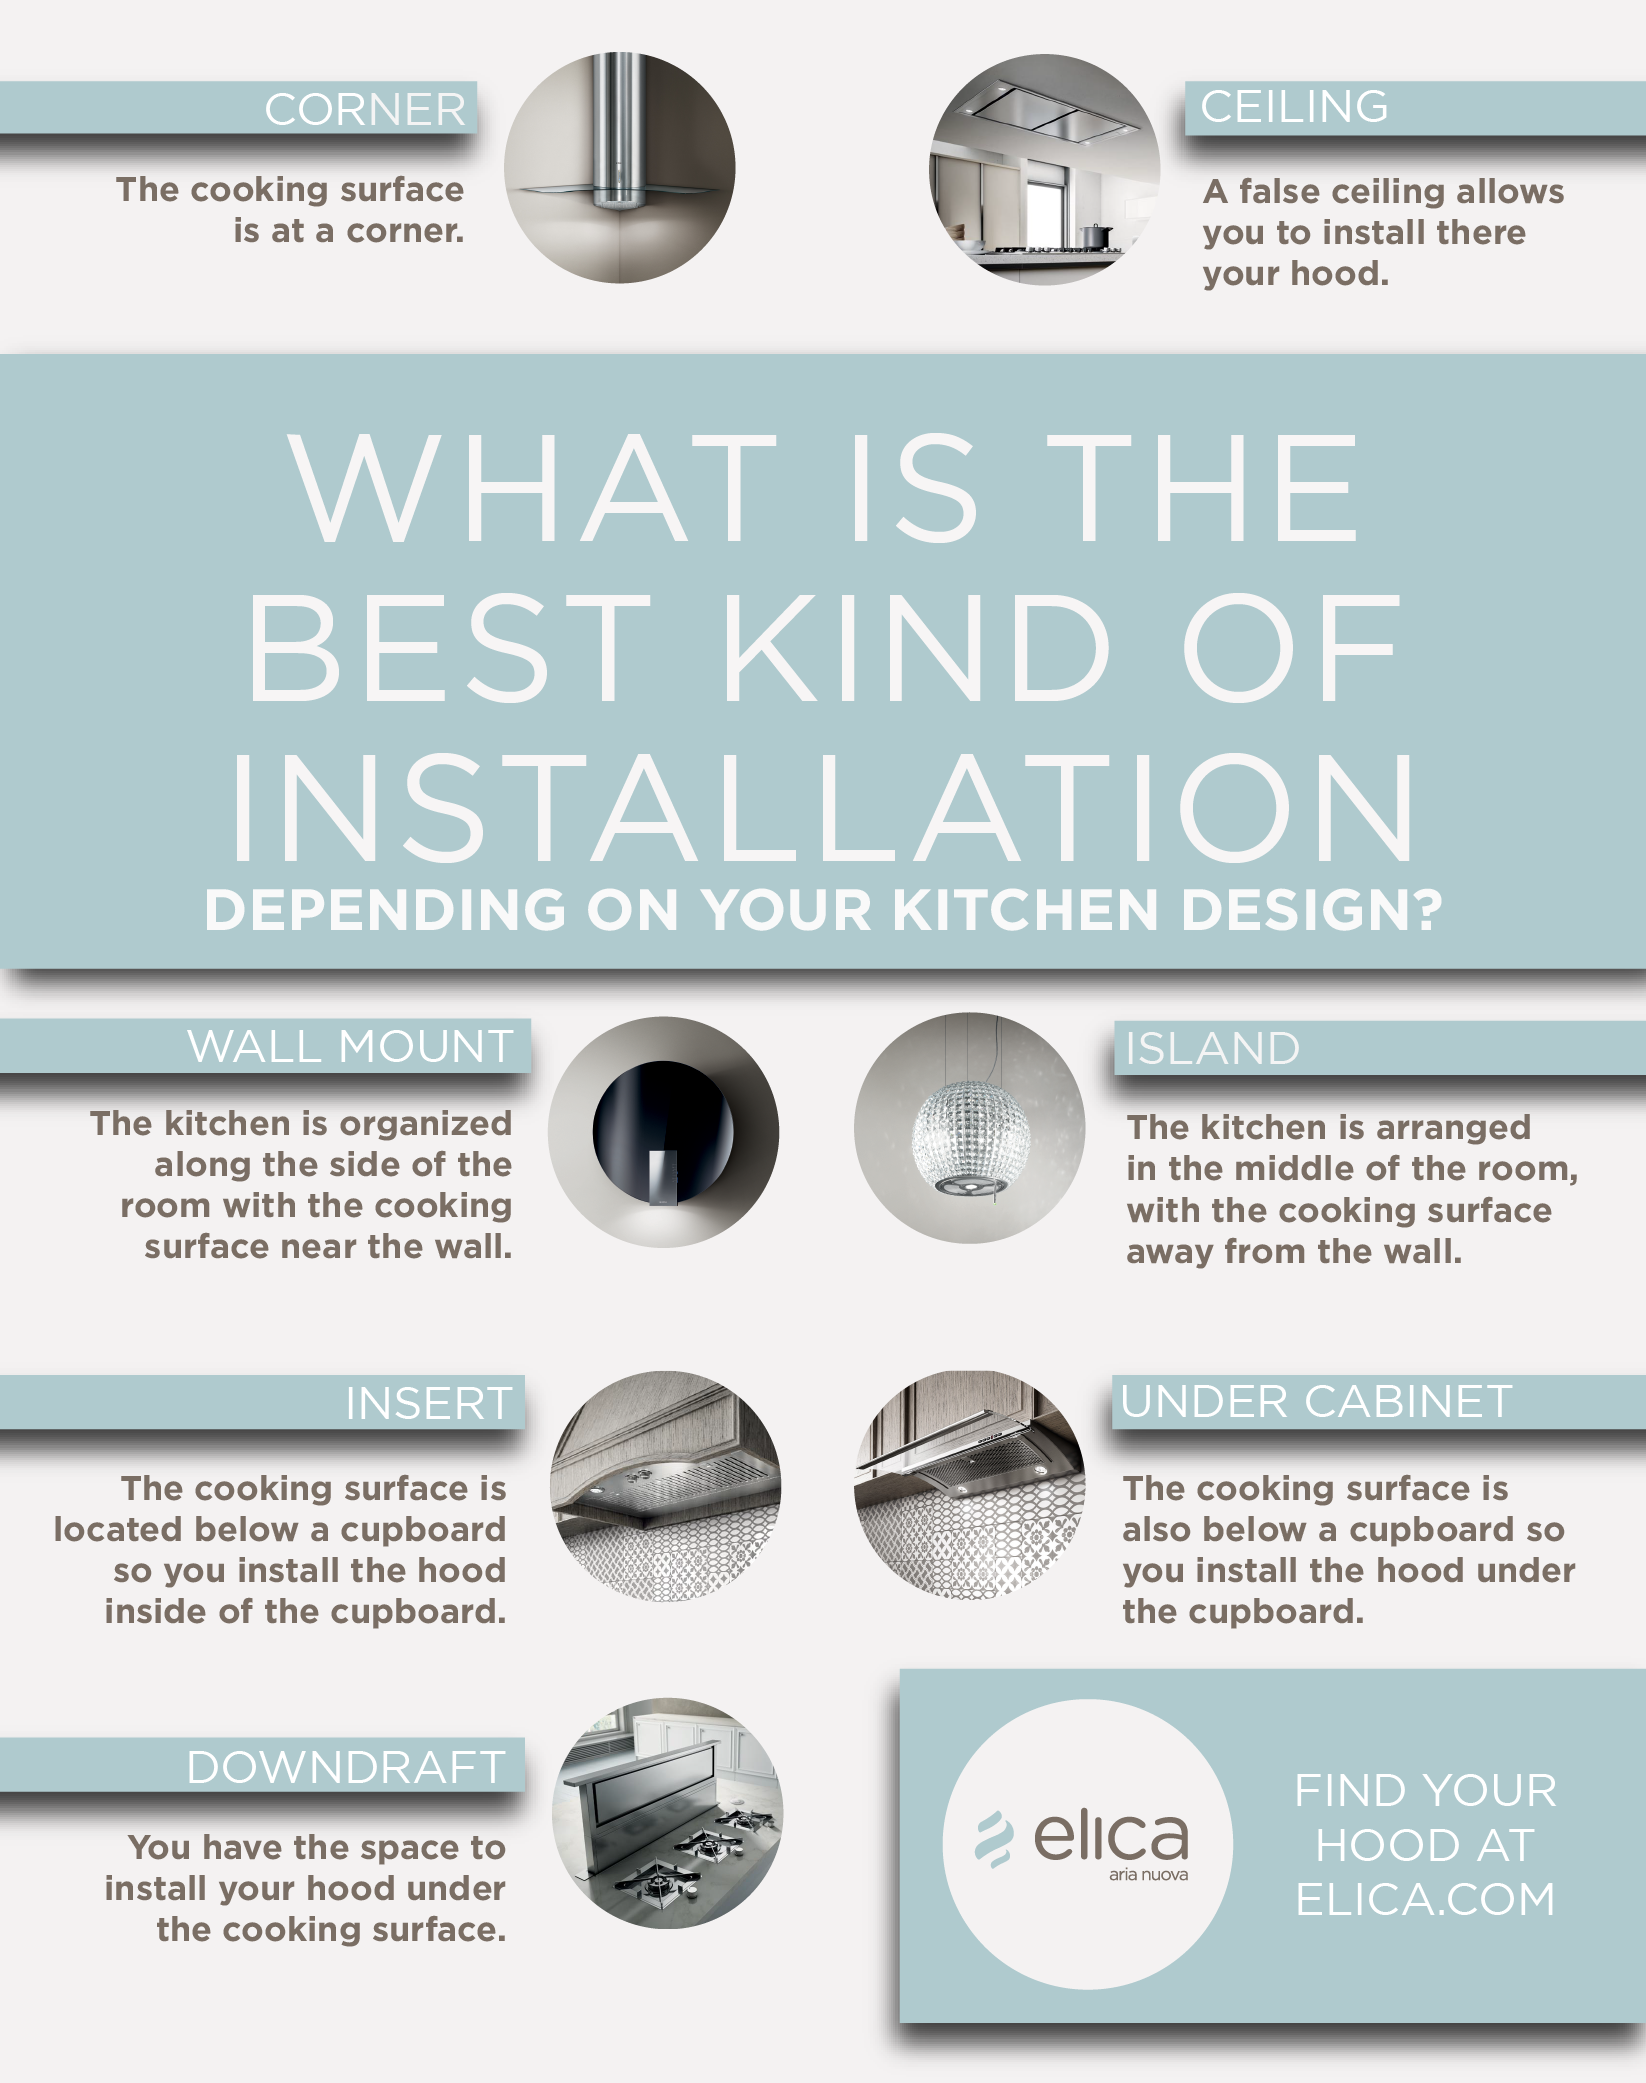 In Elica we have hoods for many kinds of installation. Find which ...